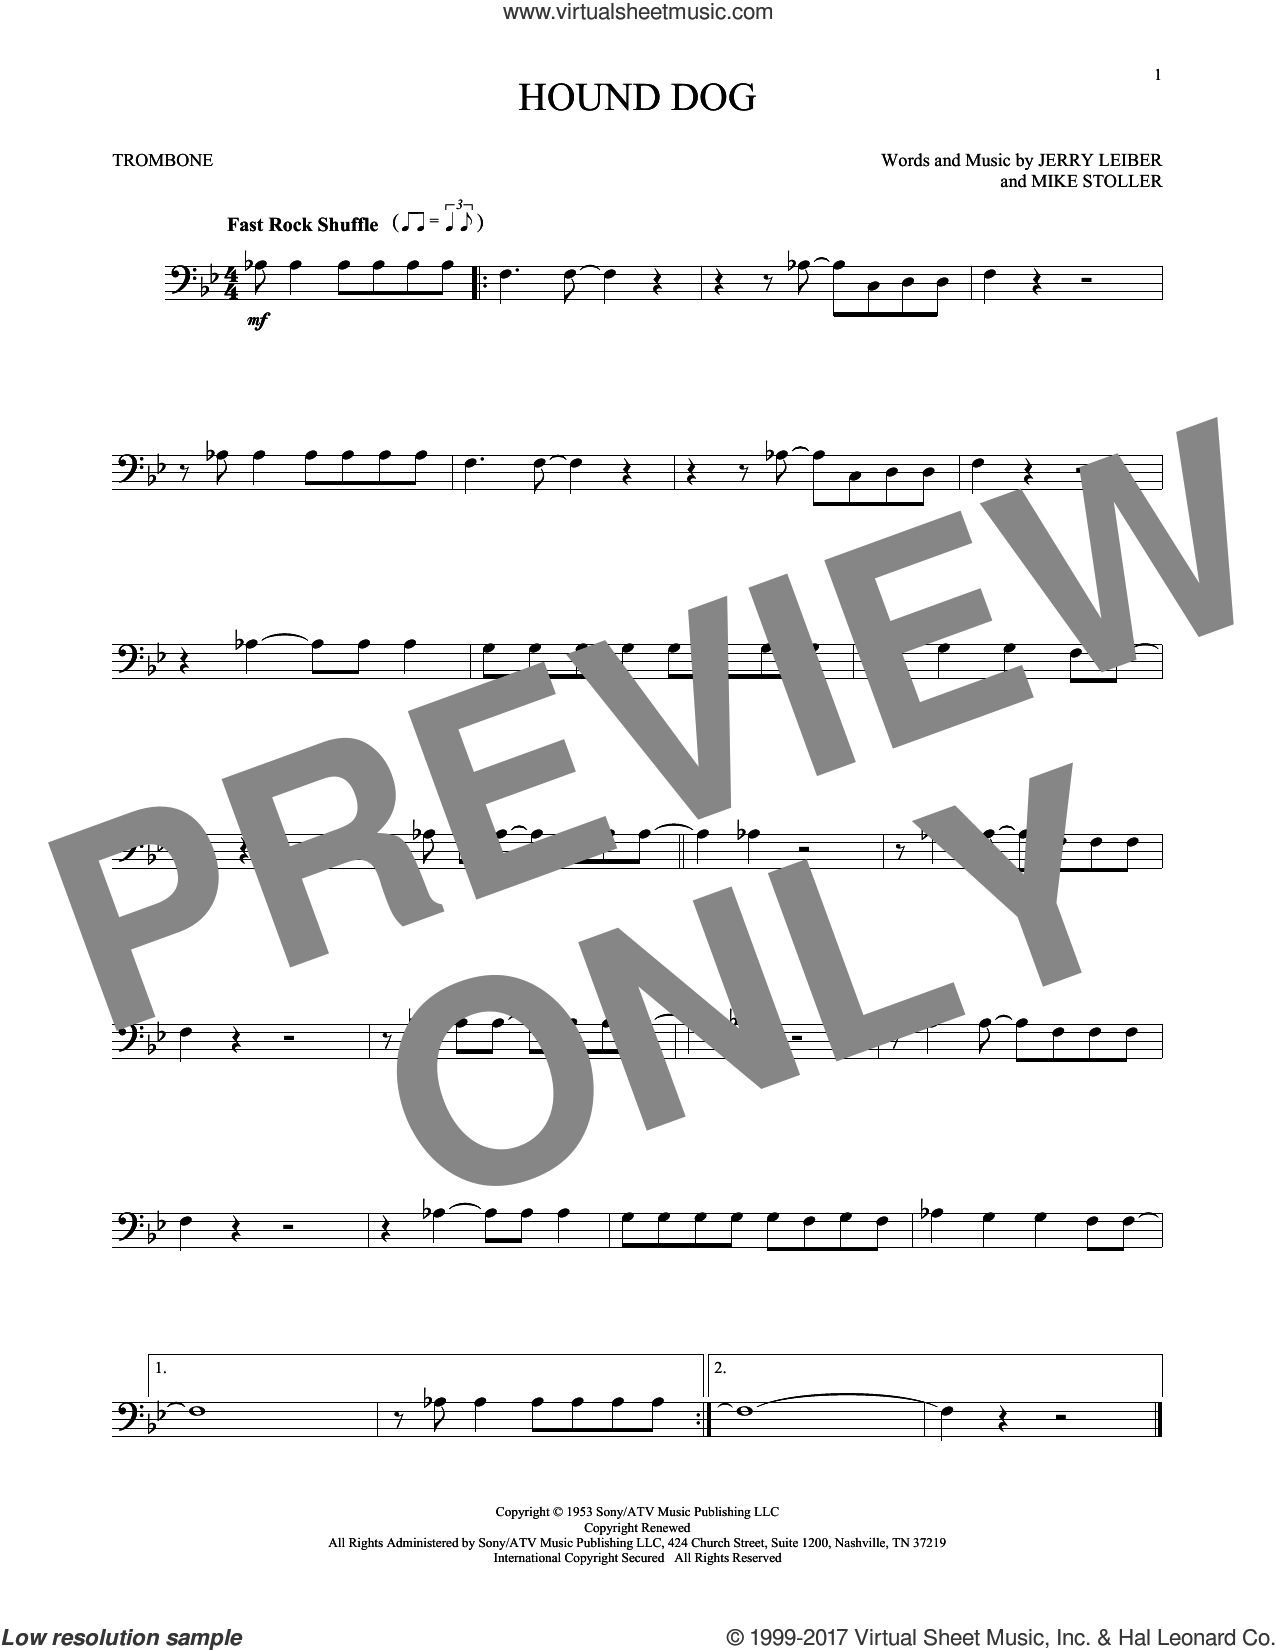 Hound Dog sheet music for trombone solo by Elvis Presley, Jerry Leiber and Mike Stoller, intermediate skill level